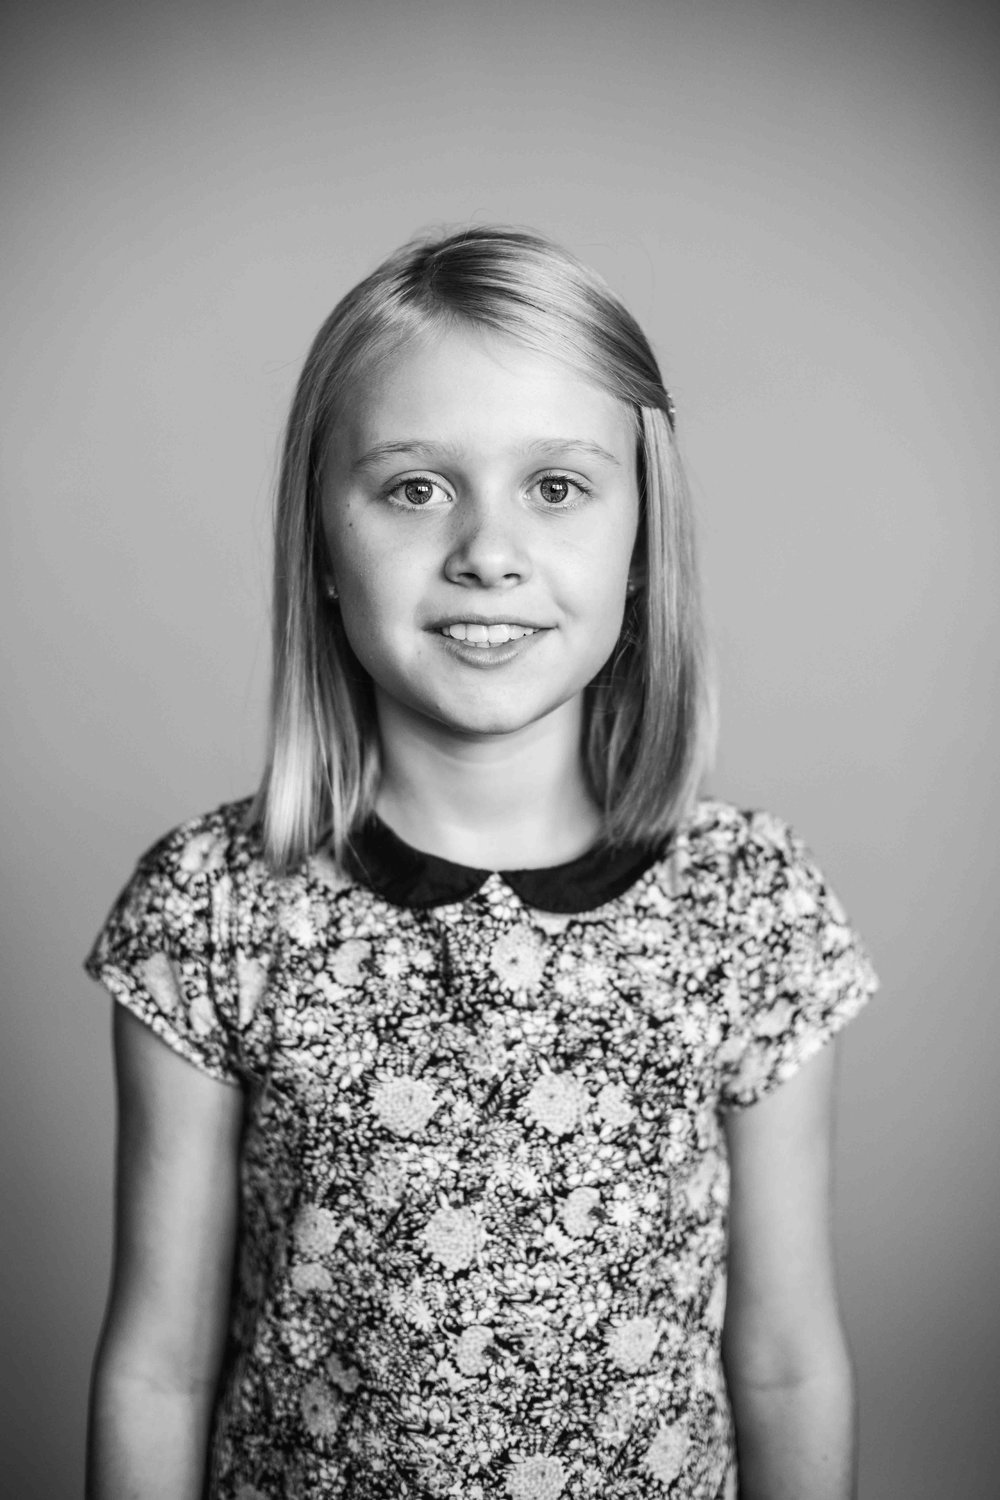 20180914_83433-rd-grade--color--713-rd-grade--BLACK&WHITE-----278snowflake-pittsburgh-boutique-school-photography.jpg